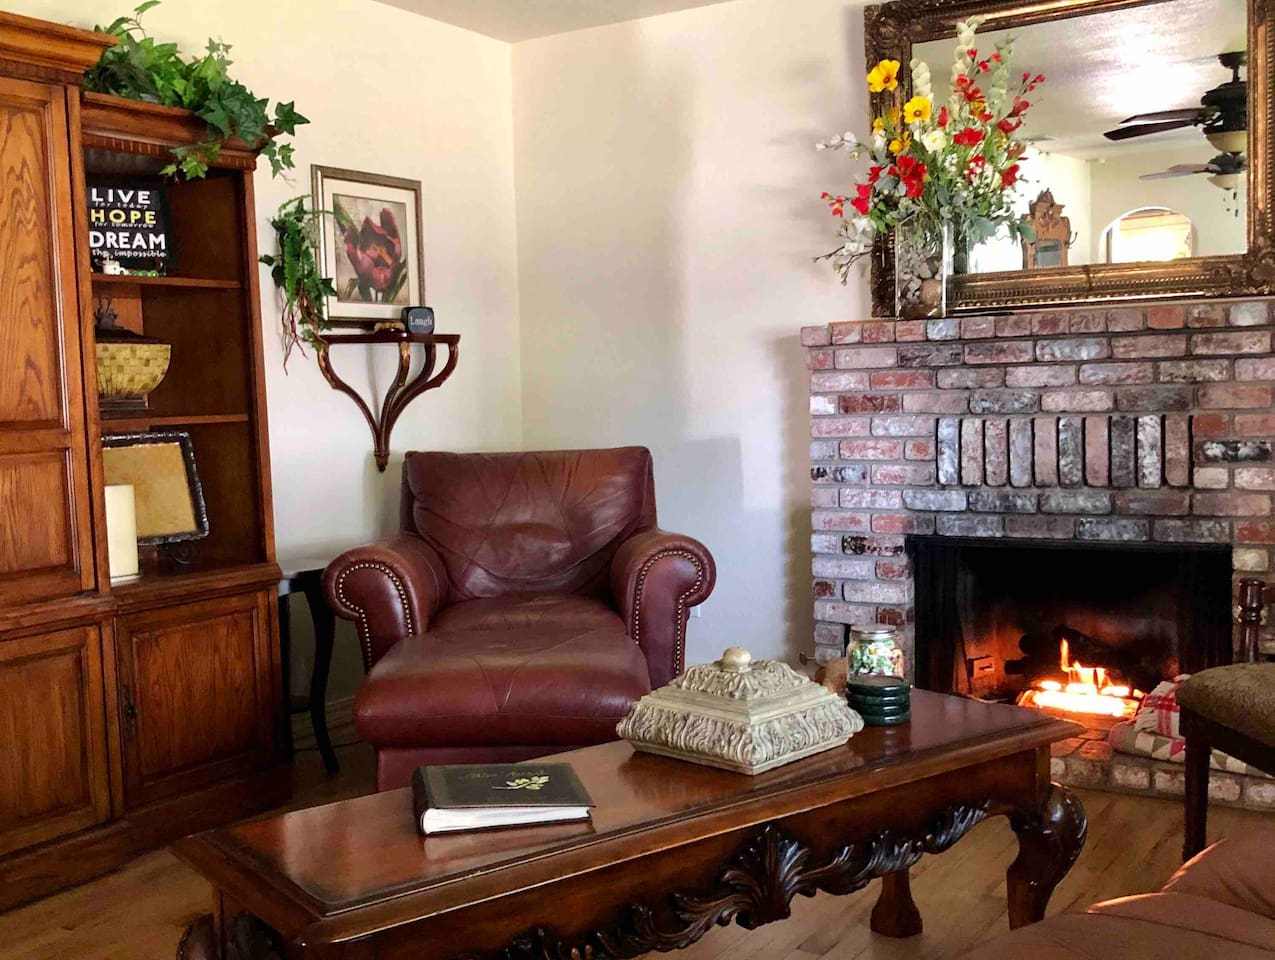 ✨Perfectly Ideal for Business AND Pleasure-Just as Comfortable for a 2 Day Getaway or Work Week. Professionally Decorated with Beautiful Classic Designer Furnishings it's a Perfect Place to Heal and Reflect if that's what you're After. A Retreat! :)